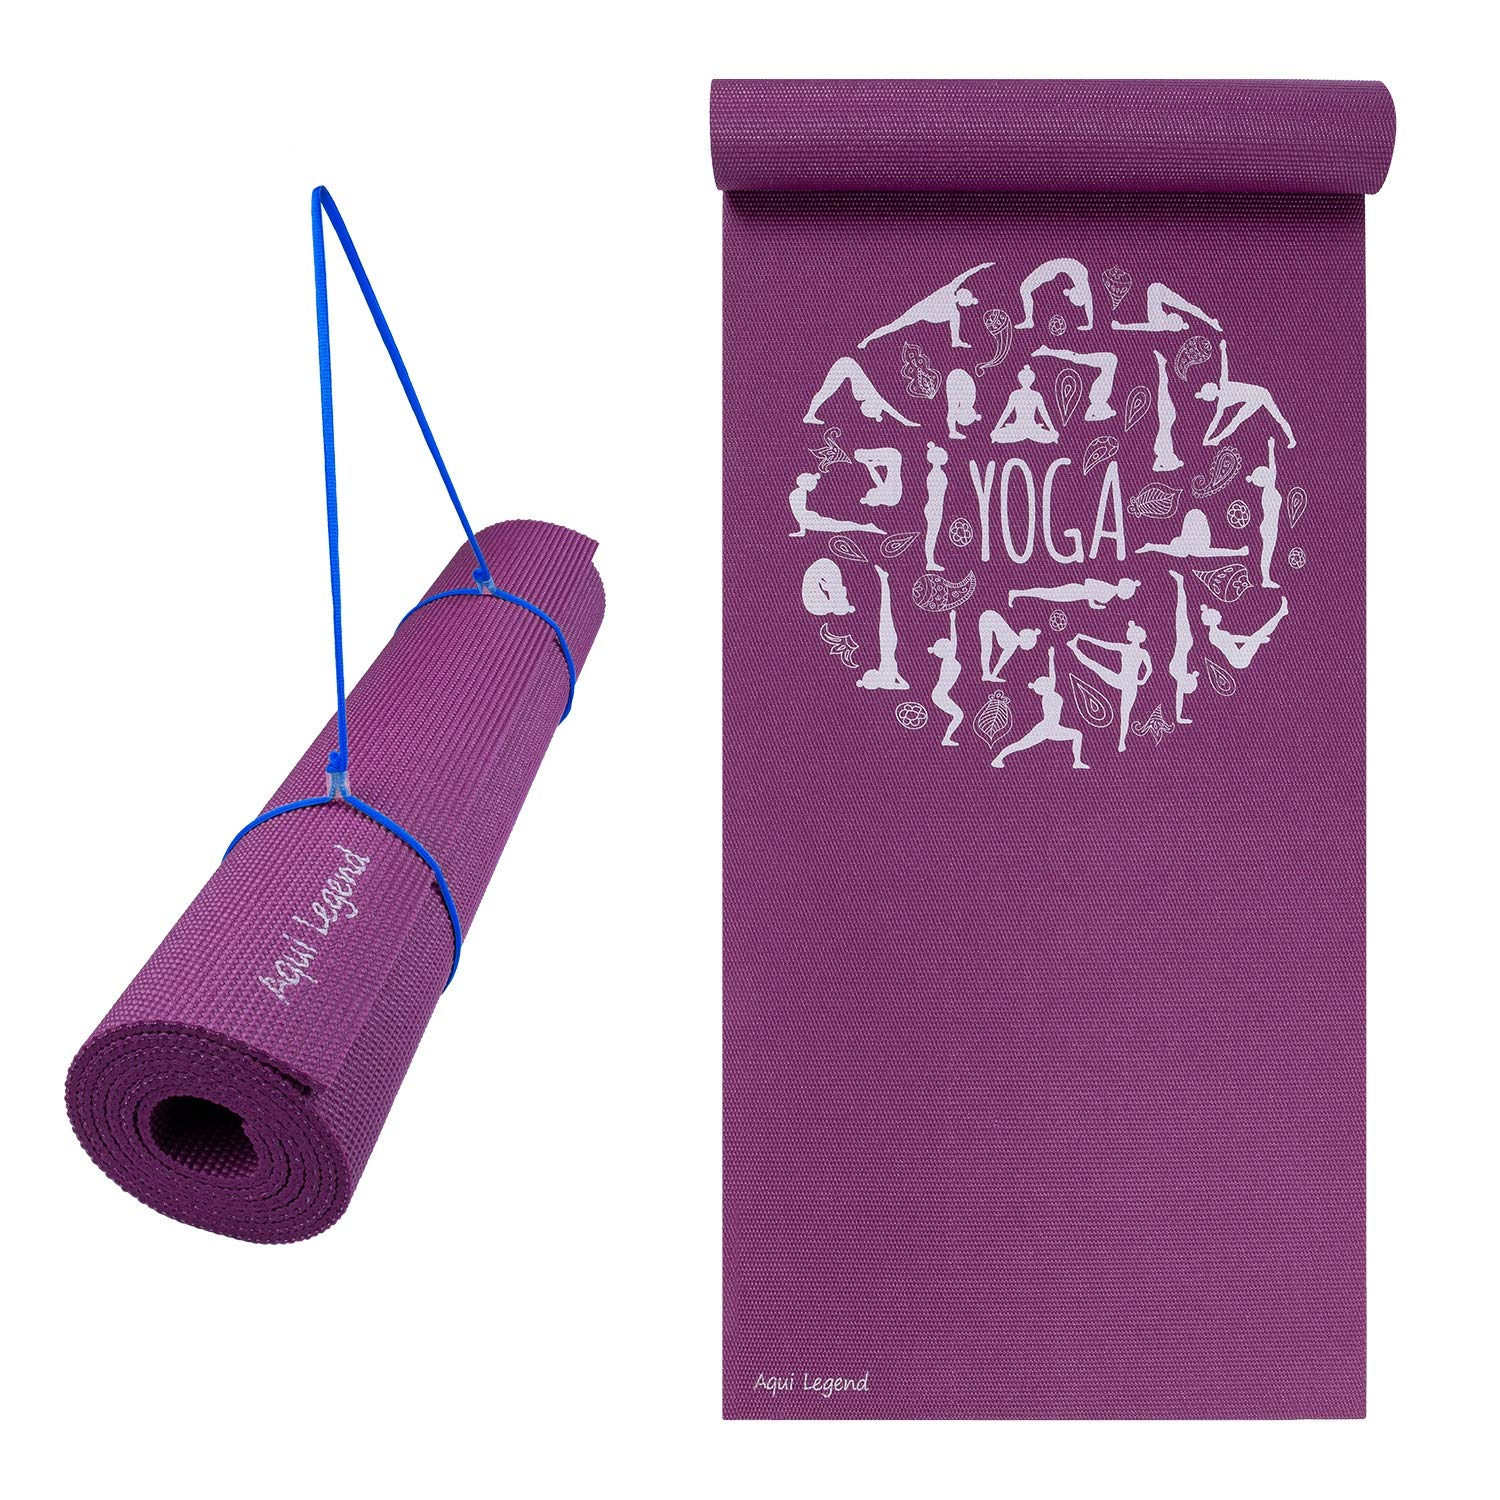 Aqui Legend Yoga Mat, Premium Print 6mm, Non Slip Exercise & Fitness Mat, Lightweight Anti-Tear for All Types of Yoga, Pilates & Floor Exercise with Carrying Strap